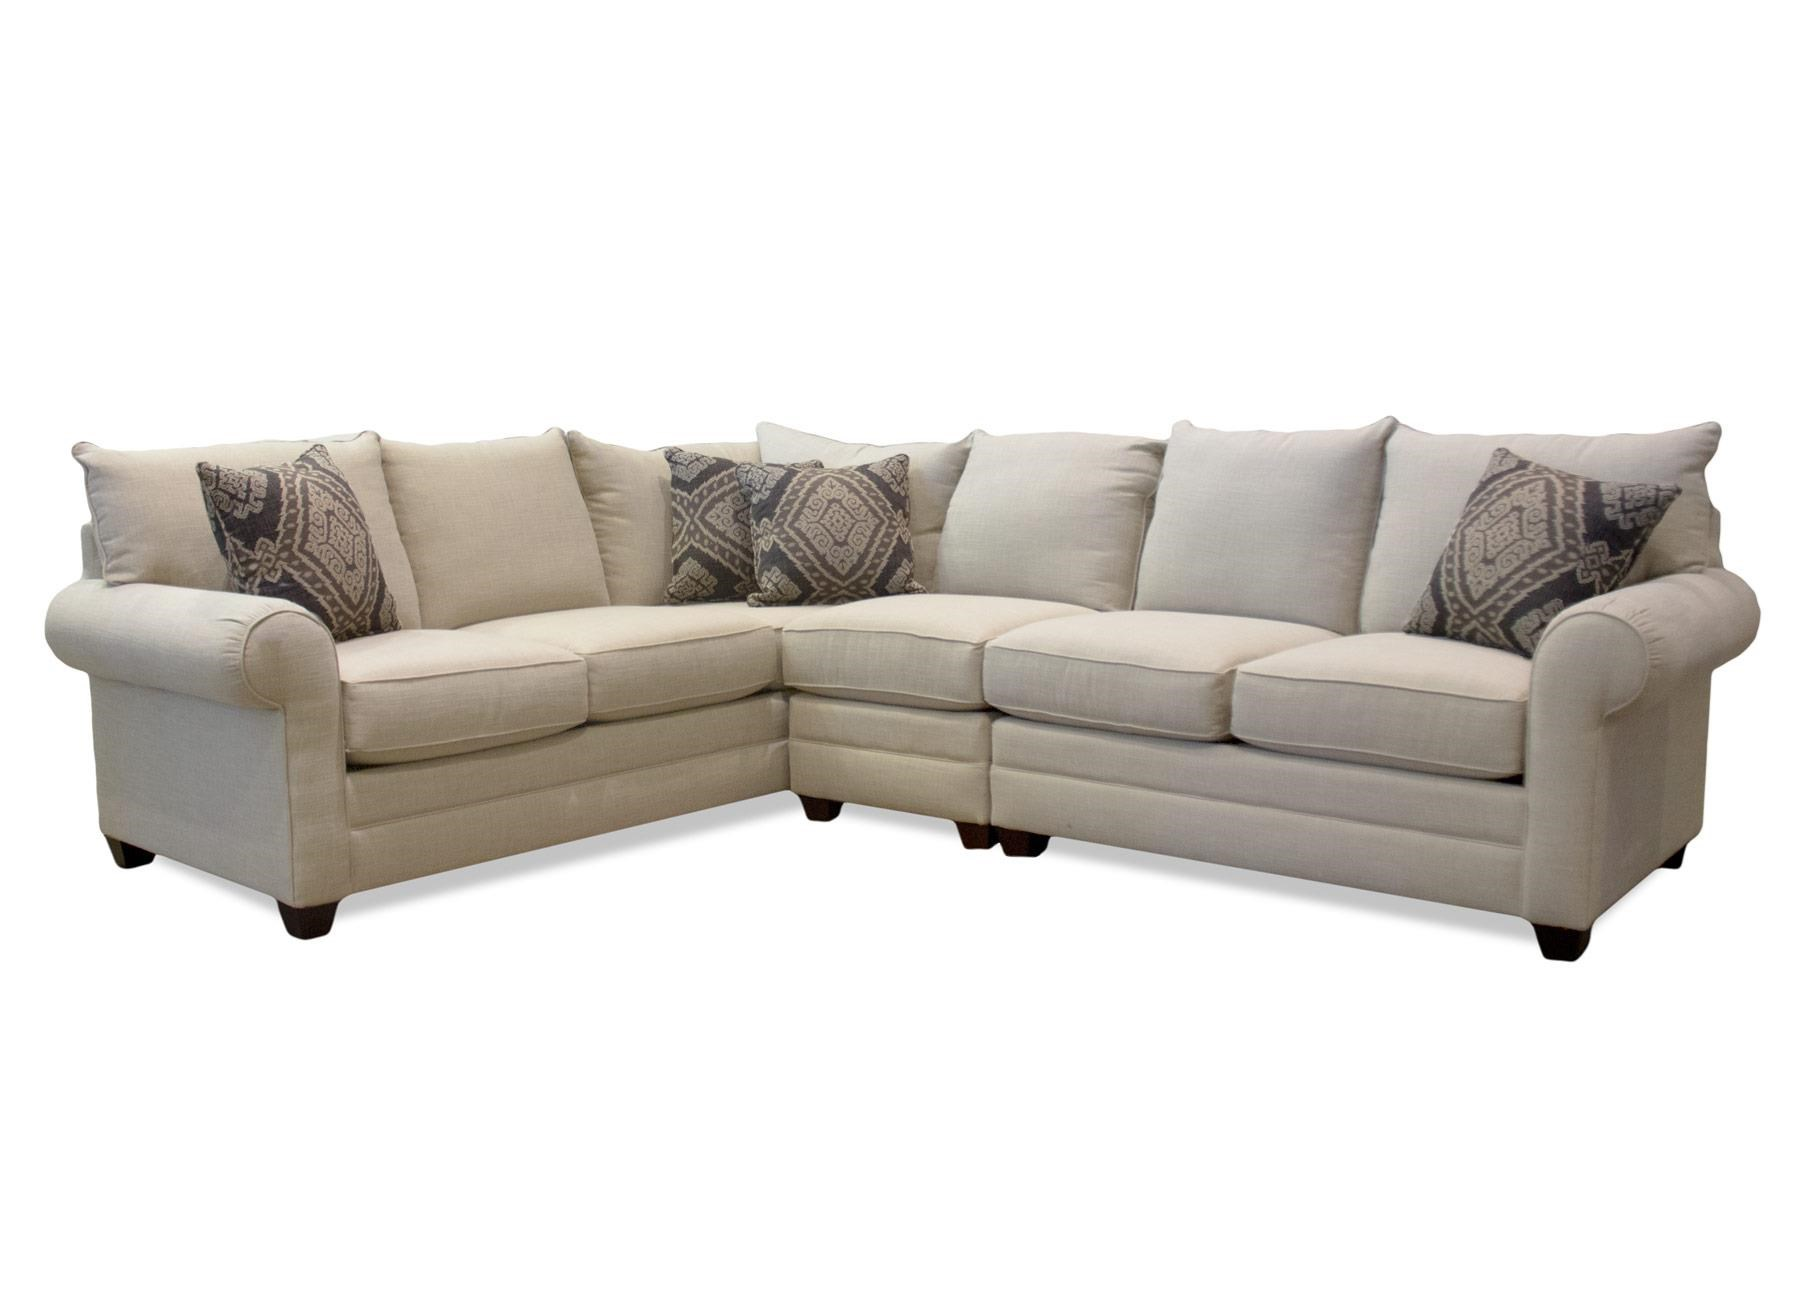 Bassett Alex 3989 Three Piece Sectional - Item Number: BASF-GRP-3989-ALEX-3PC-SECTIONAL